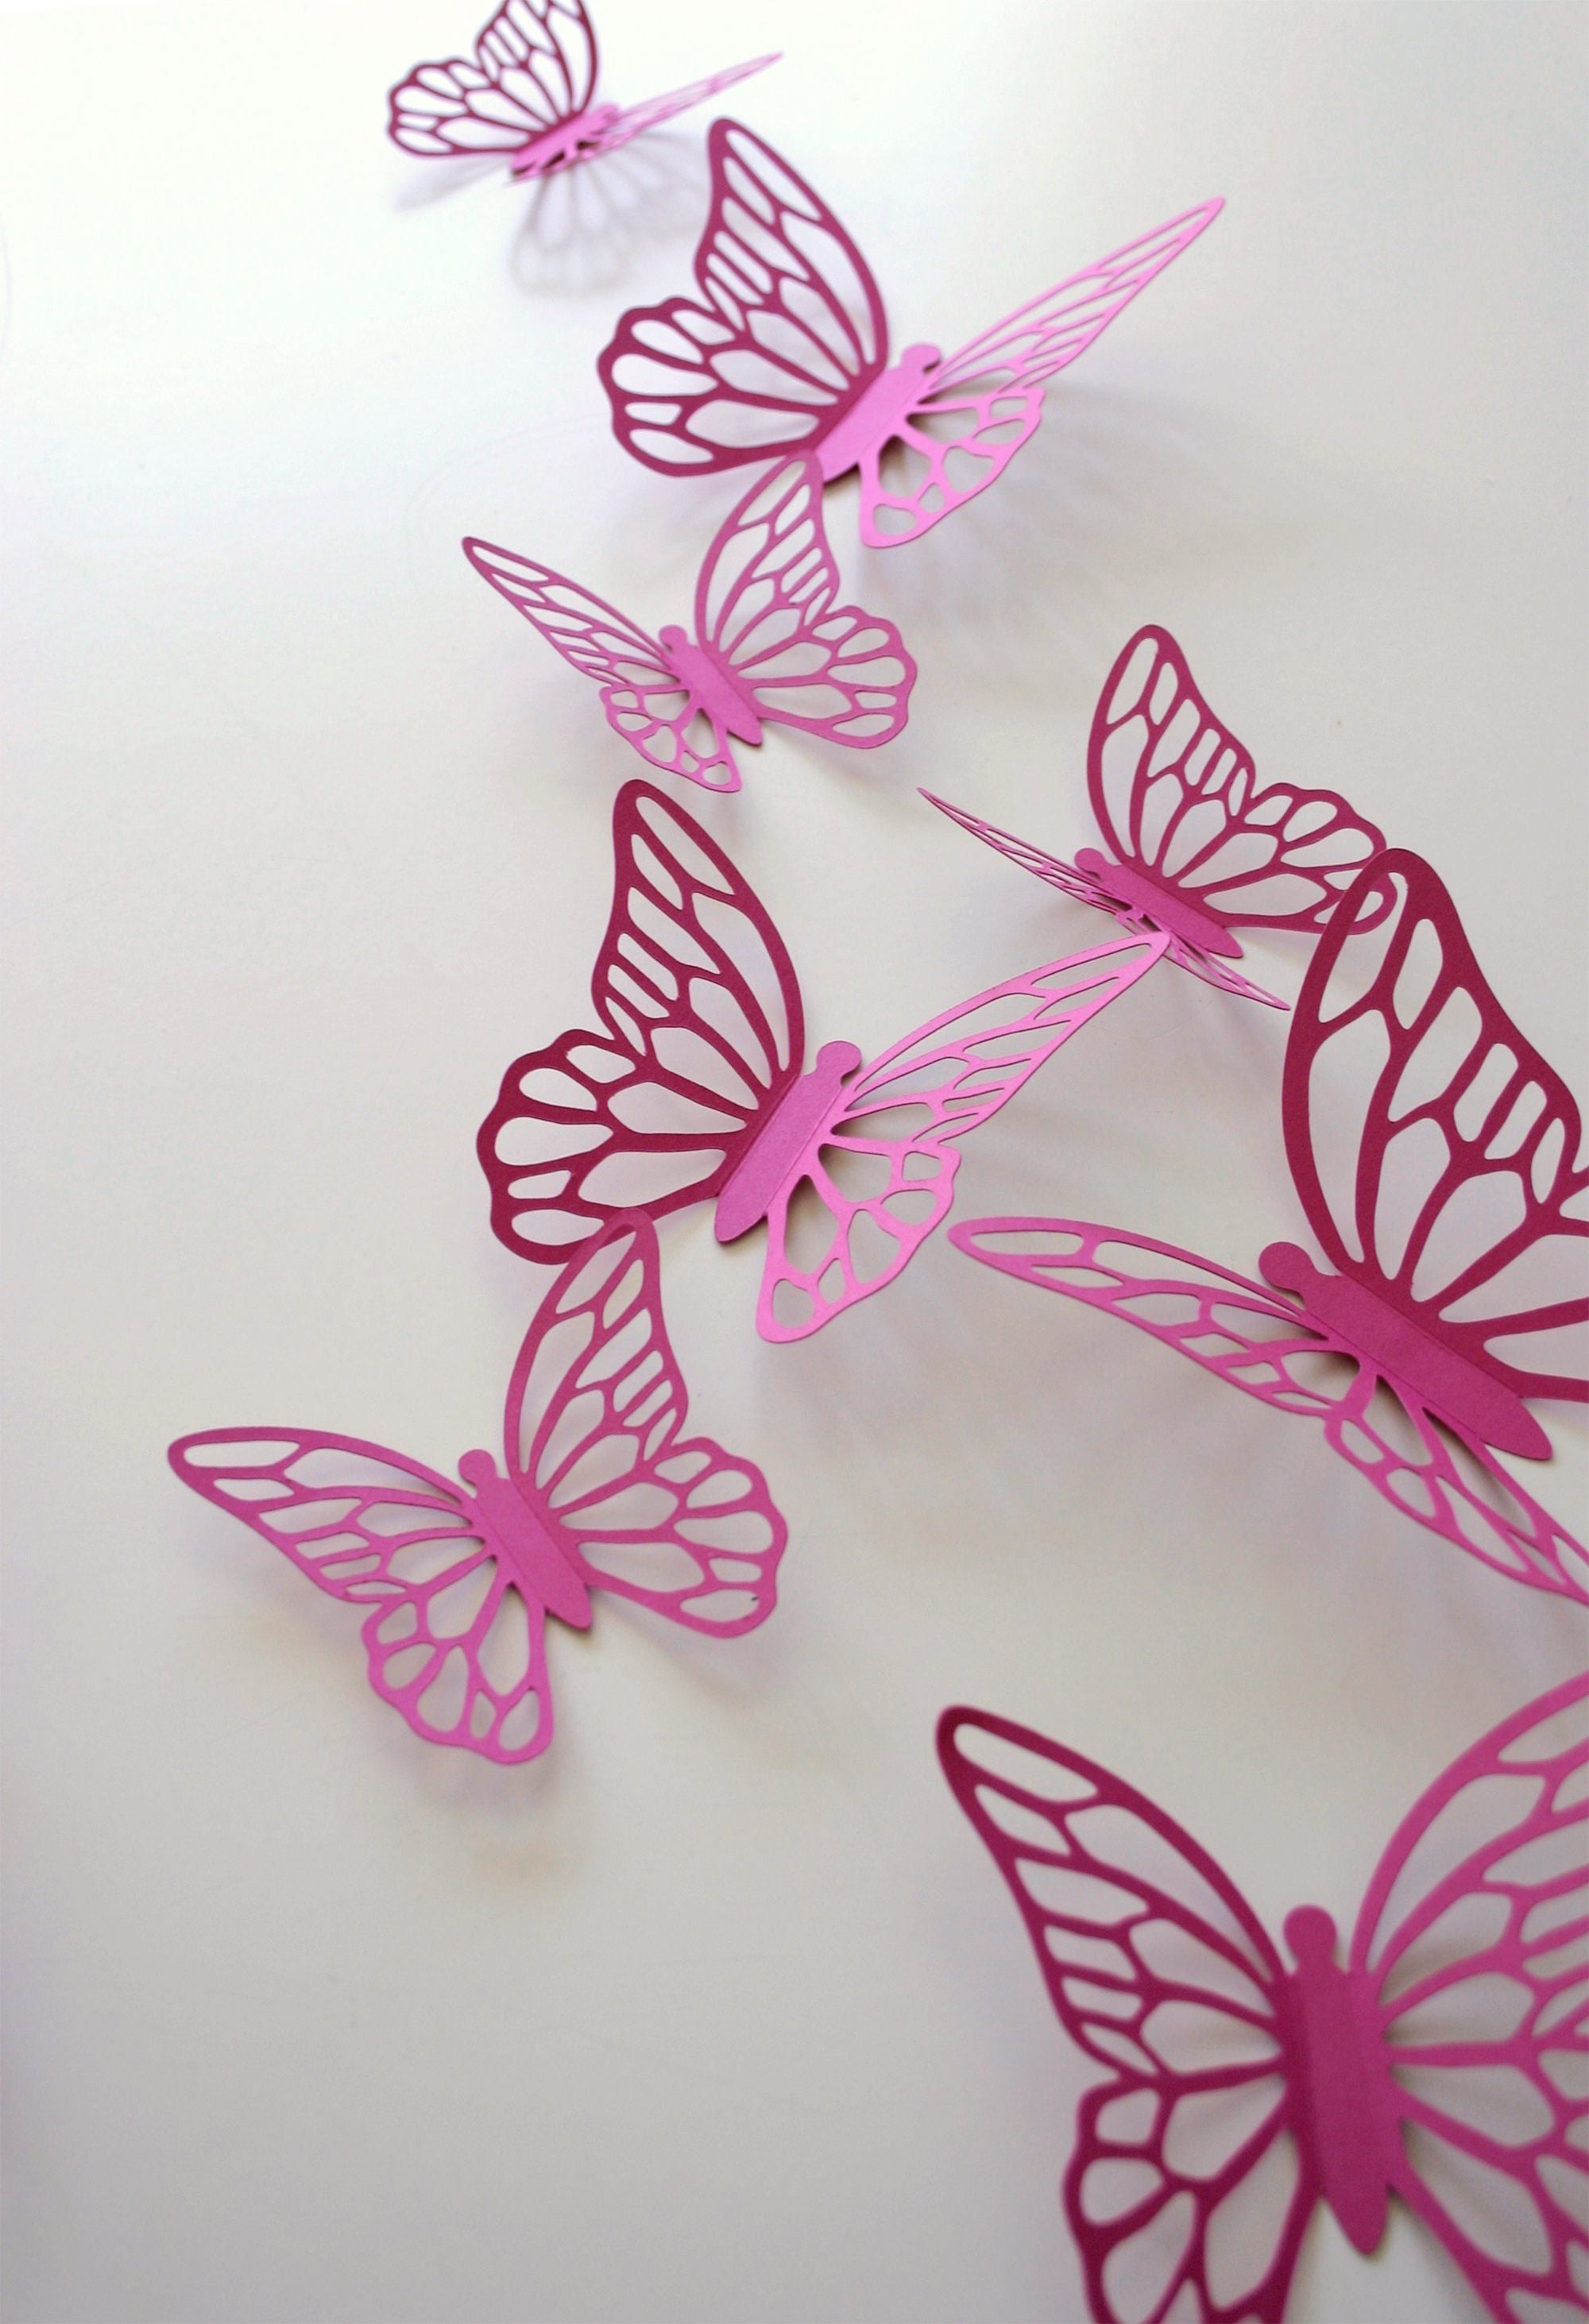 Butterfly Stickers MAGENTA Hot Pink Wall Paper Butterflies 3D